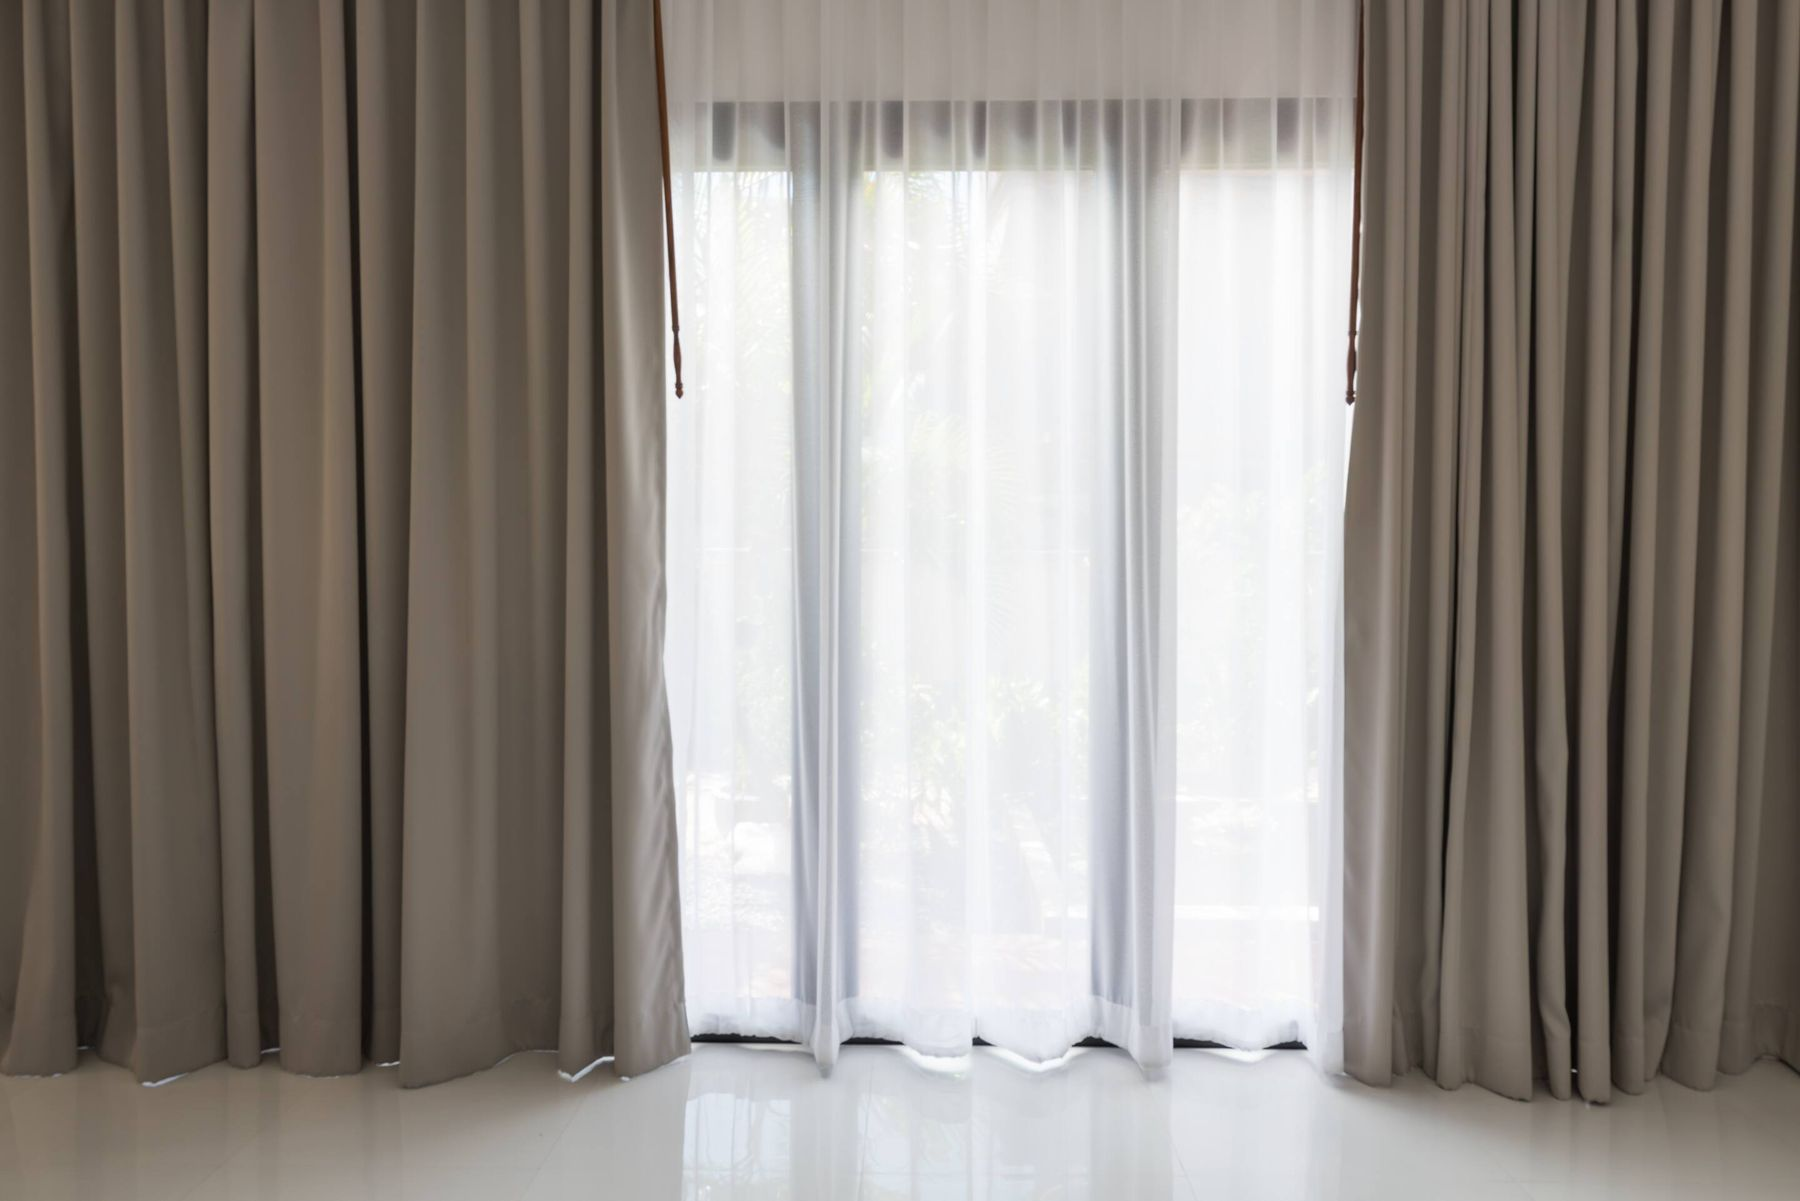 When Did You Last Clean Curtains, Shelves and Mirrors at Home? Clean Them Now!